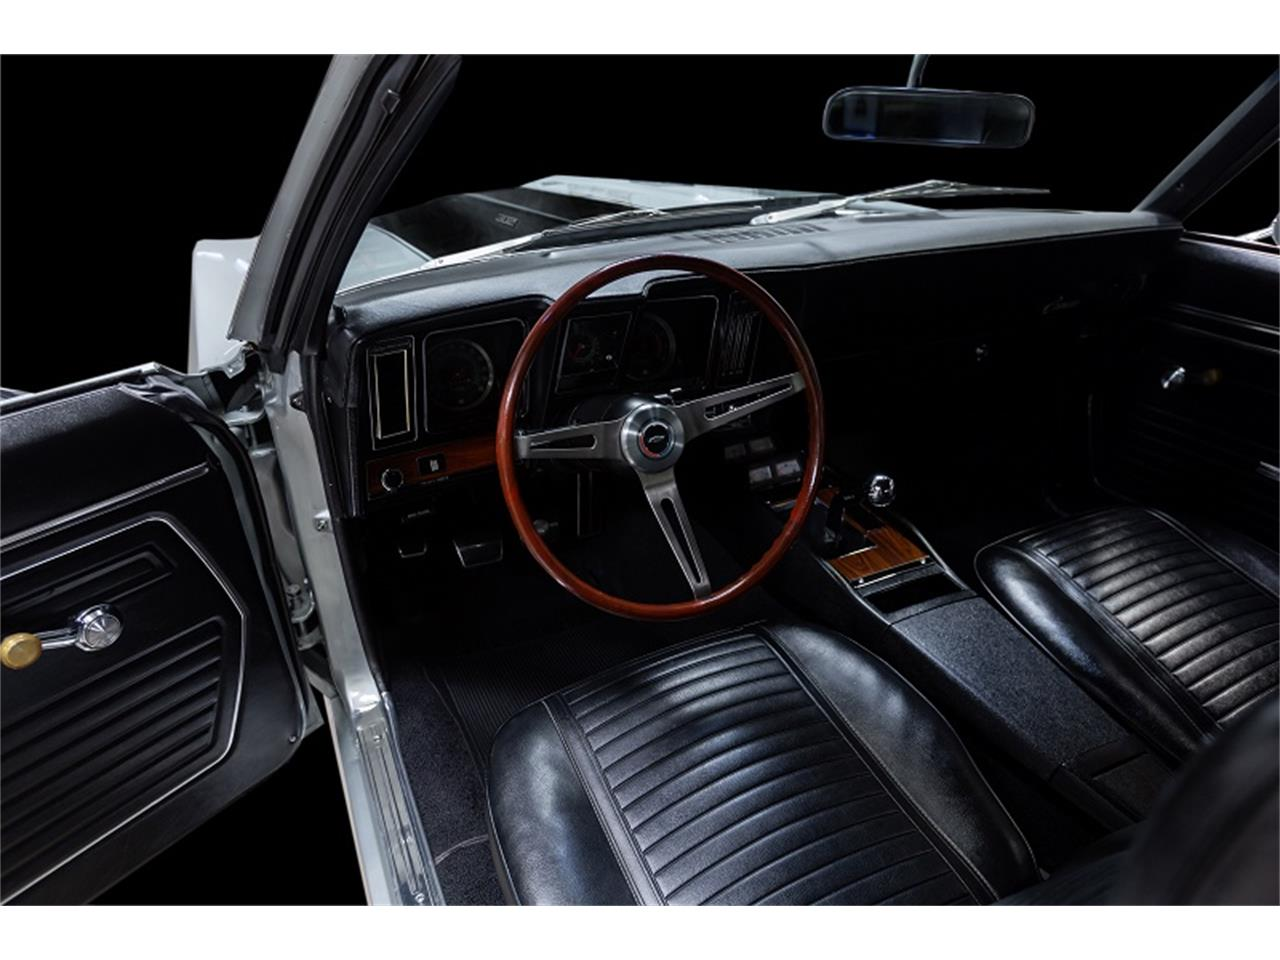 Large Picture of '69 Camaro located in Massachusetts Auction Vehicle Offered by MS Classic Cars - Q4J9